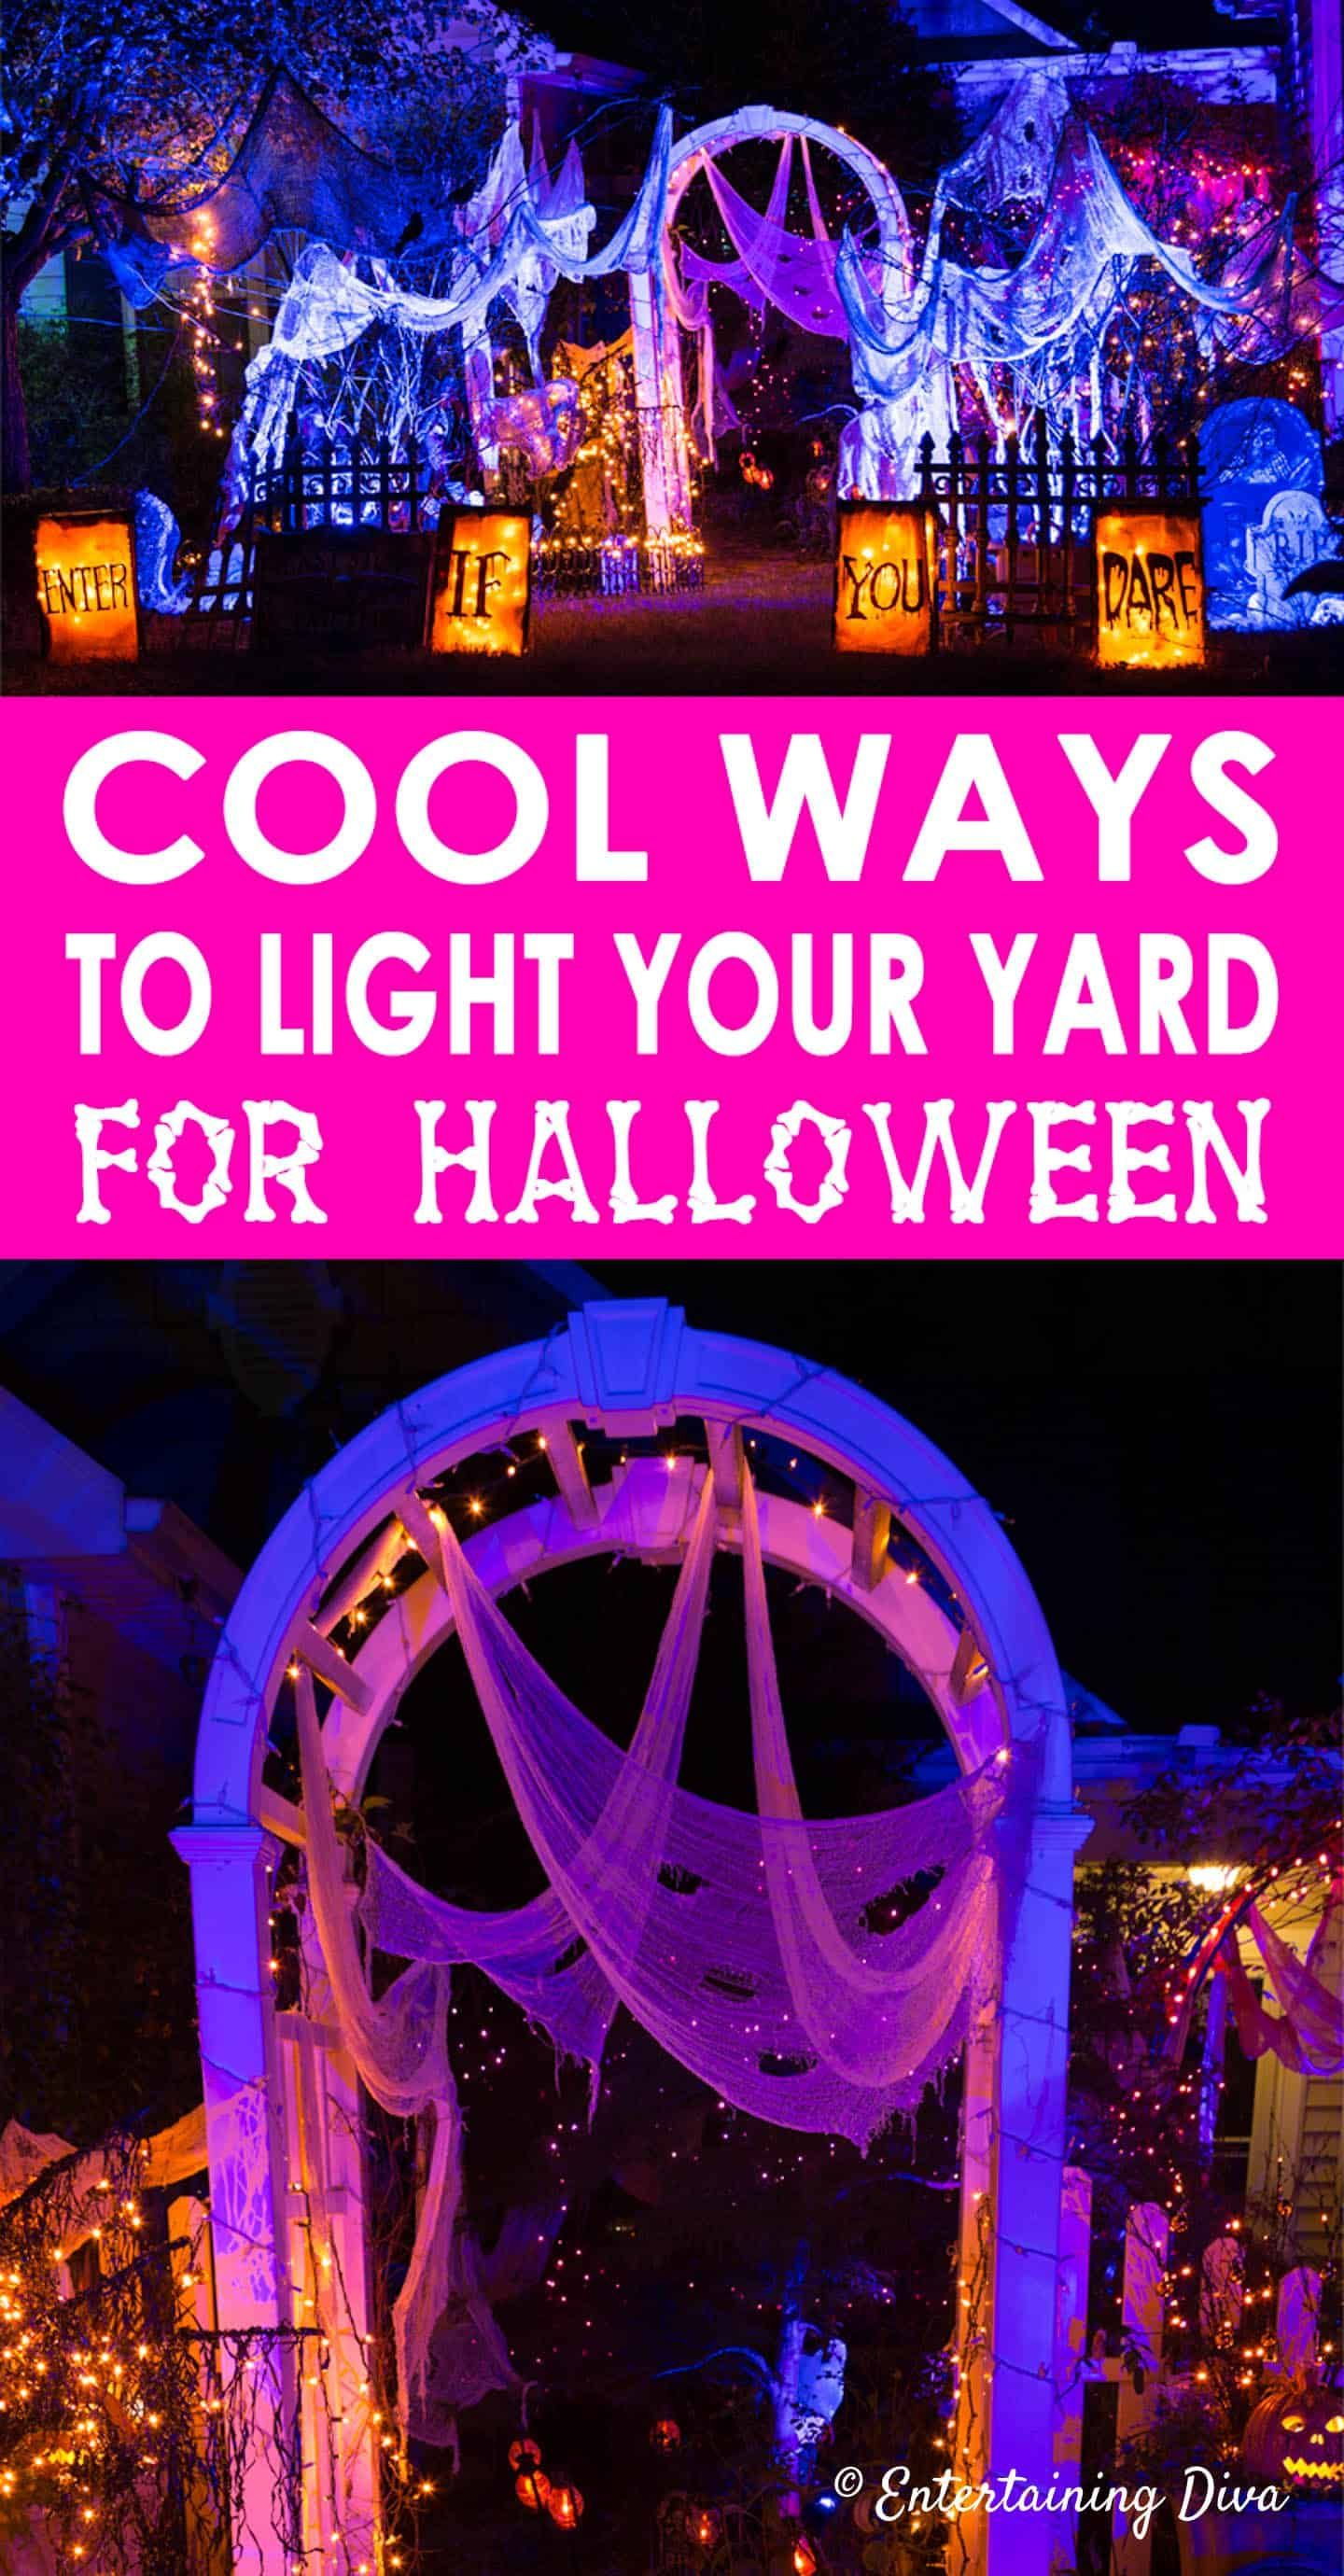 Halloween Outdoor Lighting Ideas: 18 Spooky Ways To Light Your Yard - Entertaining Diva @ From House To Home